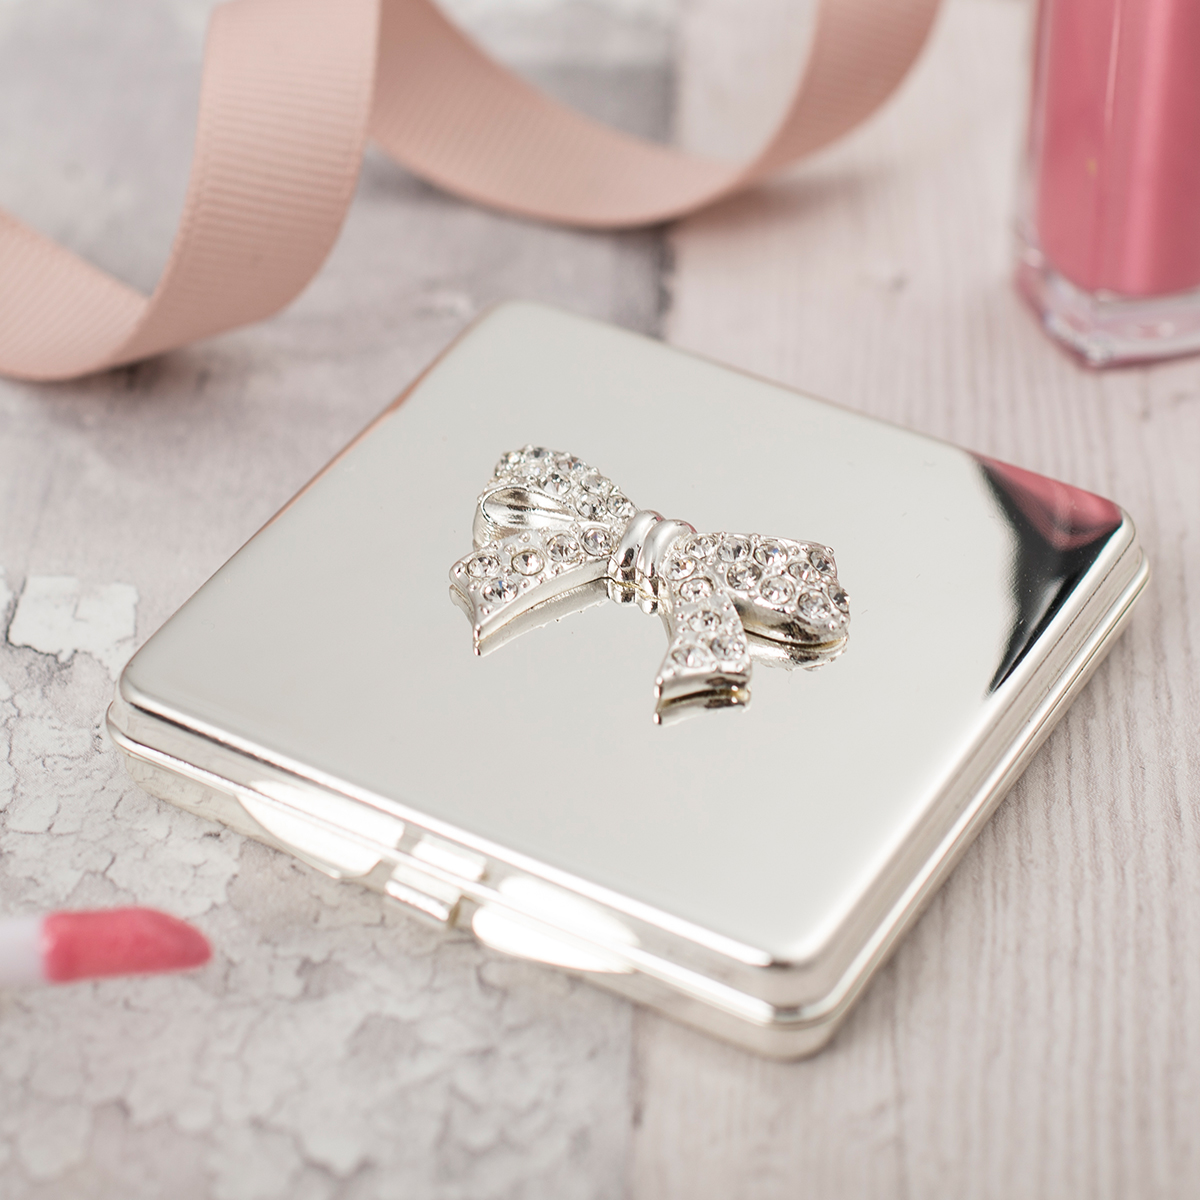 Engraved Compact Mirror With Crystal Bow